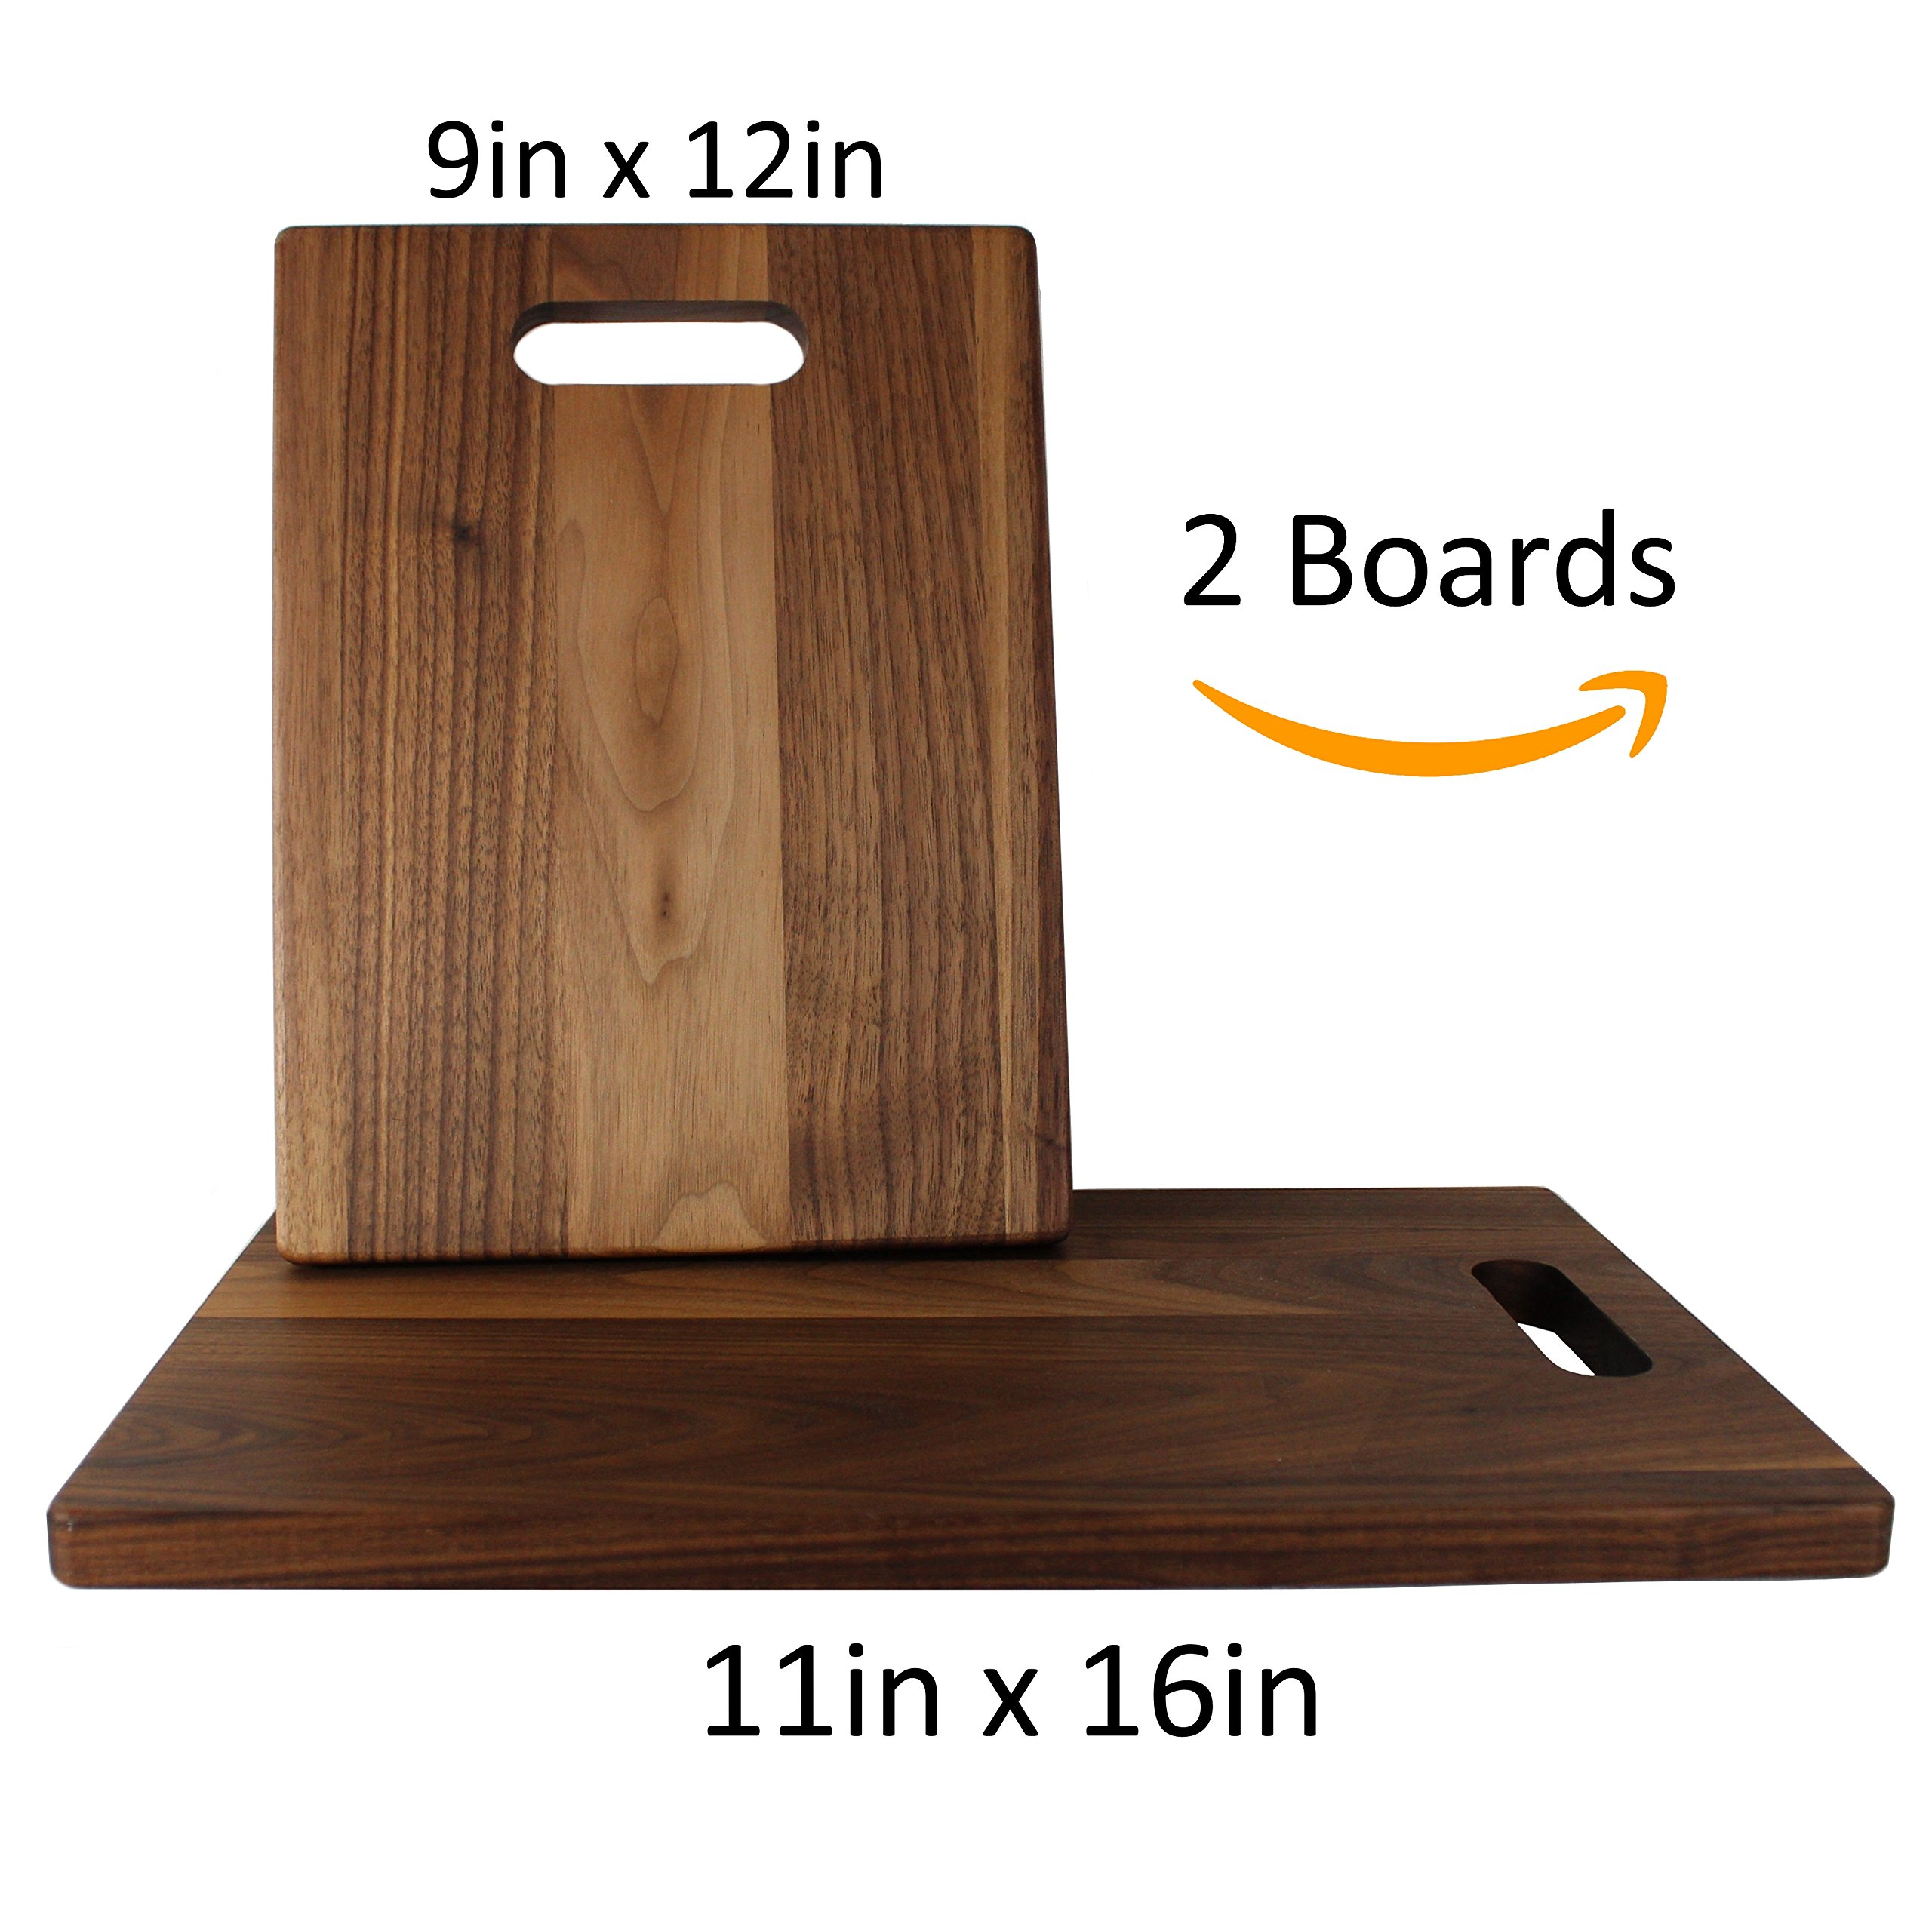 KitchenTalent Walnut Cutting Board Set - Large and Small Dark Hardwood Cutting Boards With Handle Cutouts - 11 x 16 x .75-9 x 12 x .75 - Solid Wood Chopping Block - Dark Countertop Butcher Block